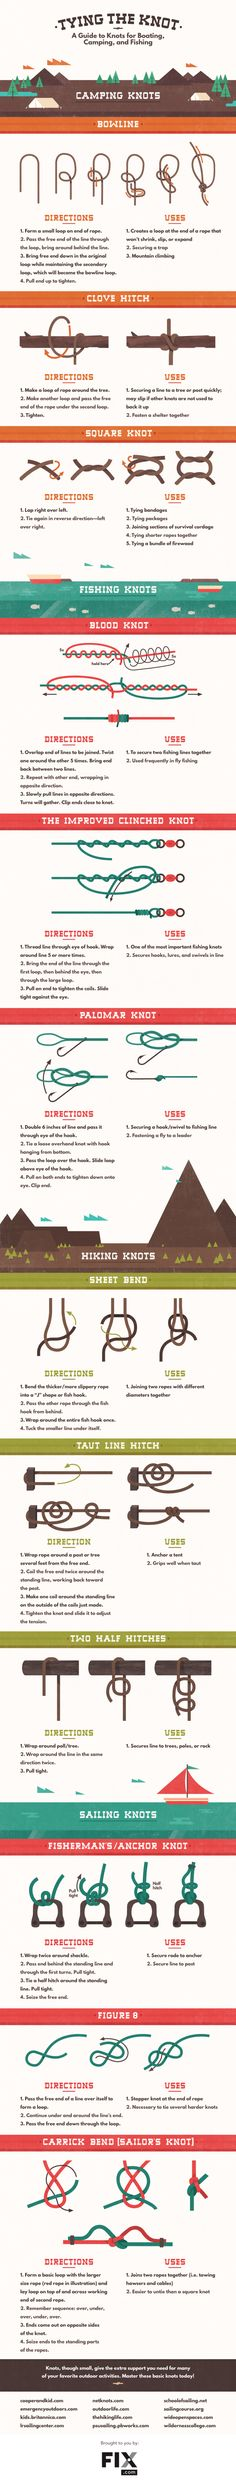 Learn How to Tie 12 Useful Knots with This Visual Guide